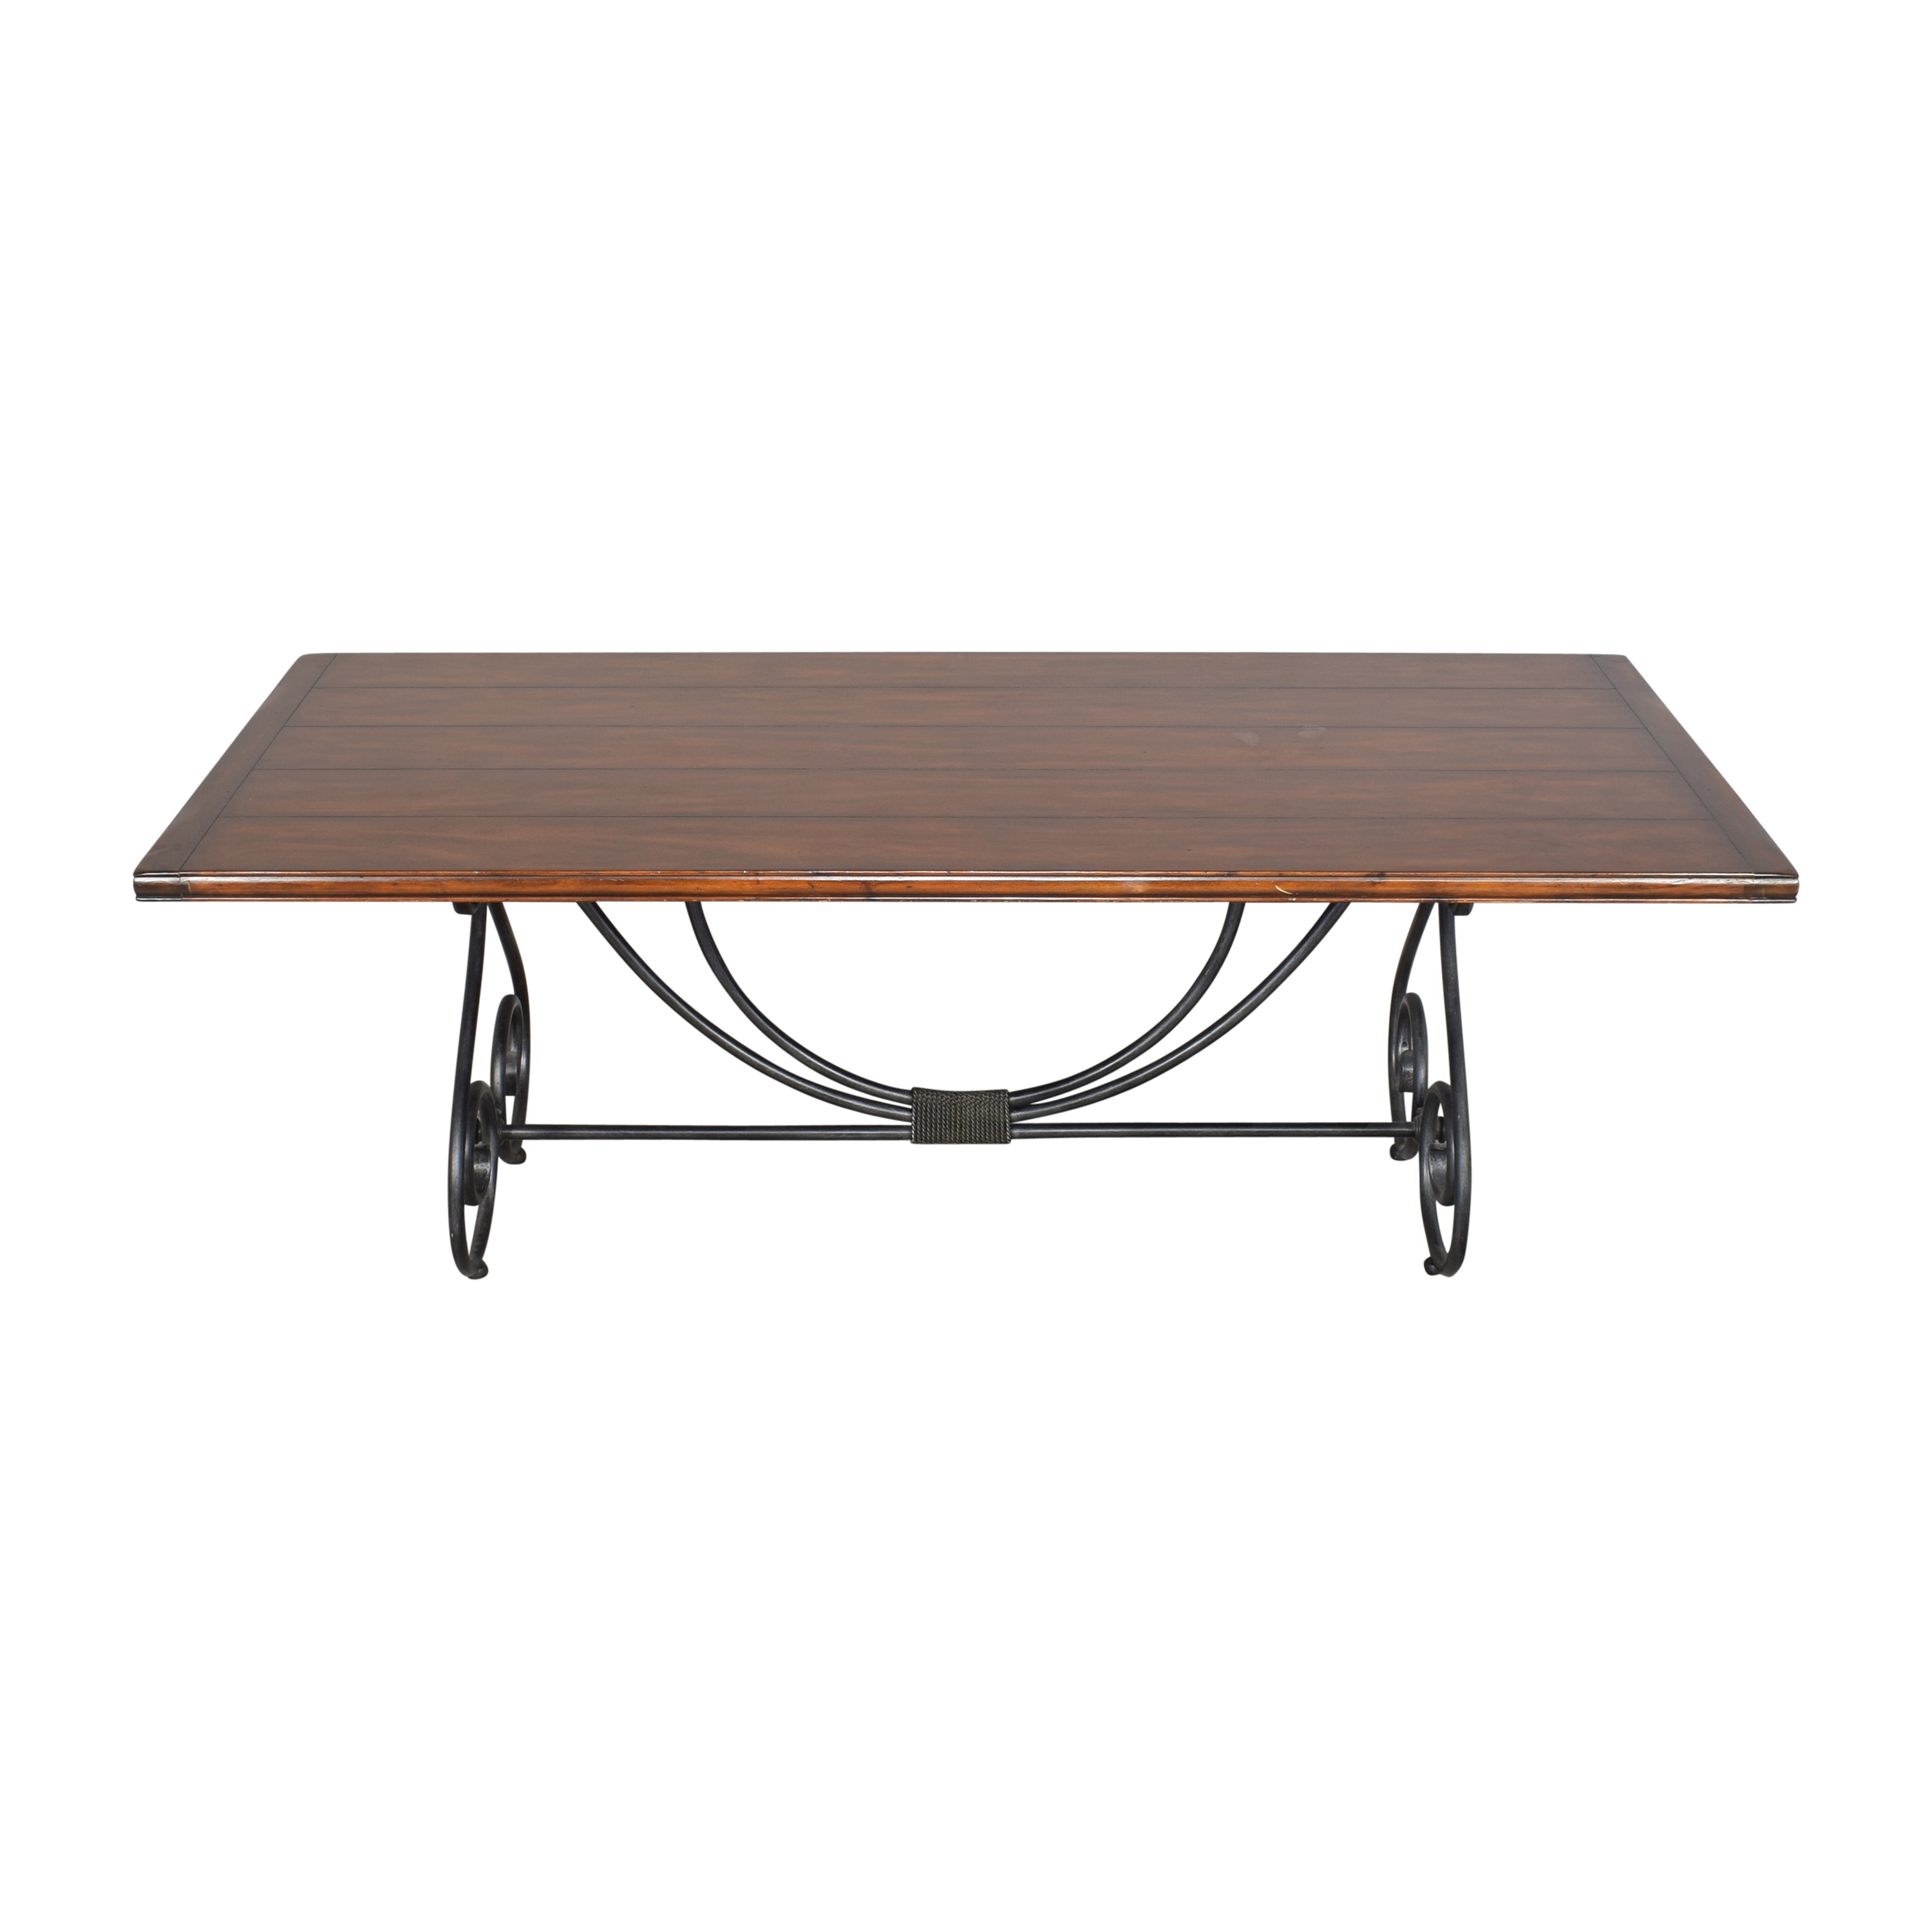 Theodore Alexander Theodore Alexander Rustic Dining Table used